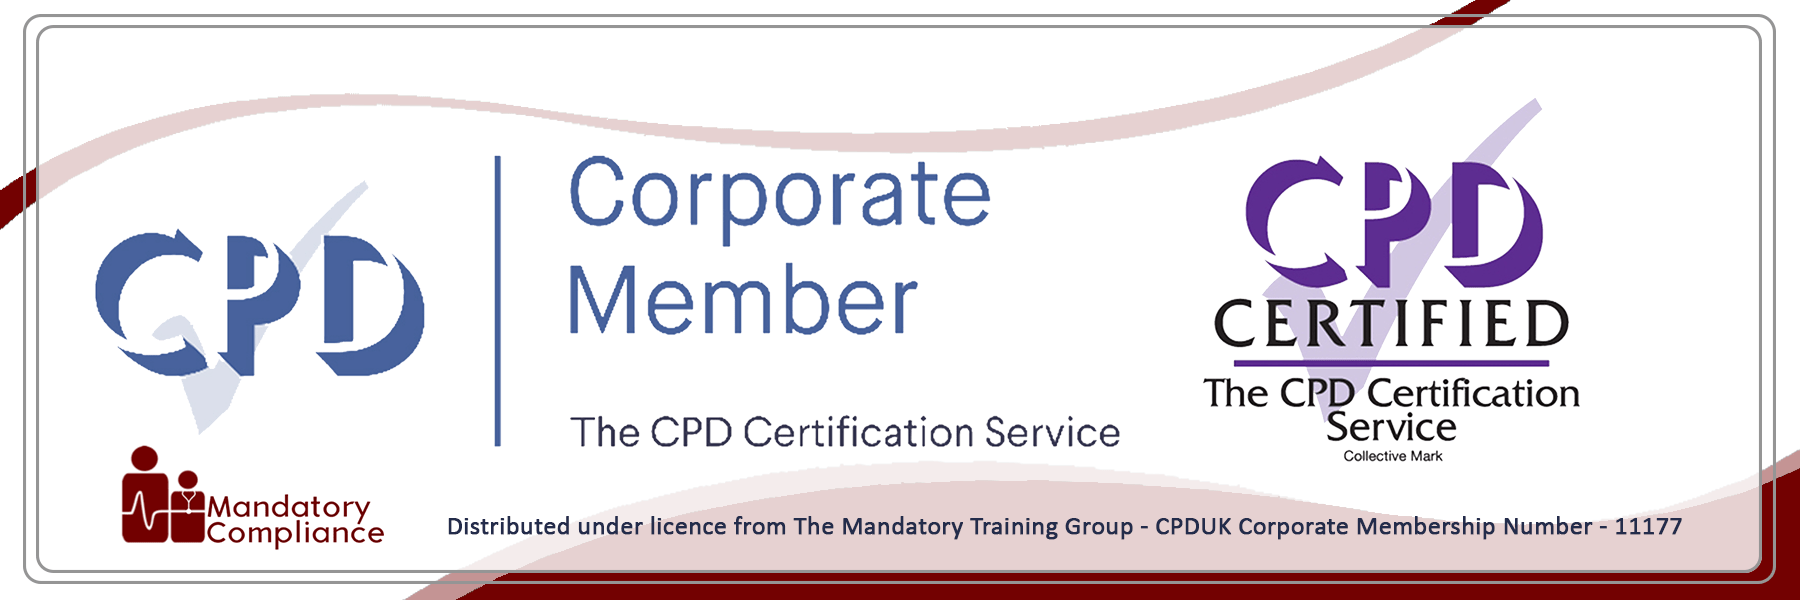 Dental CPD Courses - E-Learning Courses - Mandatory Compliance UK -